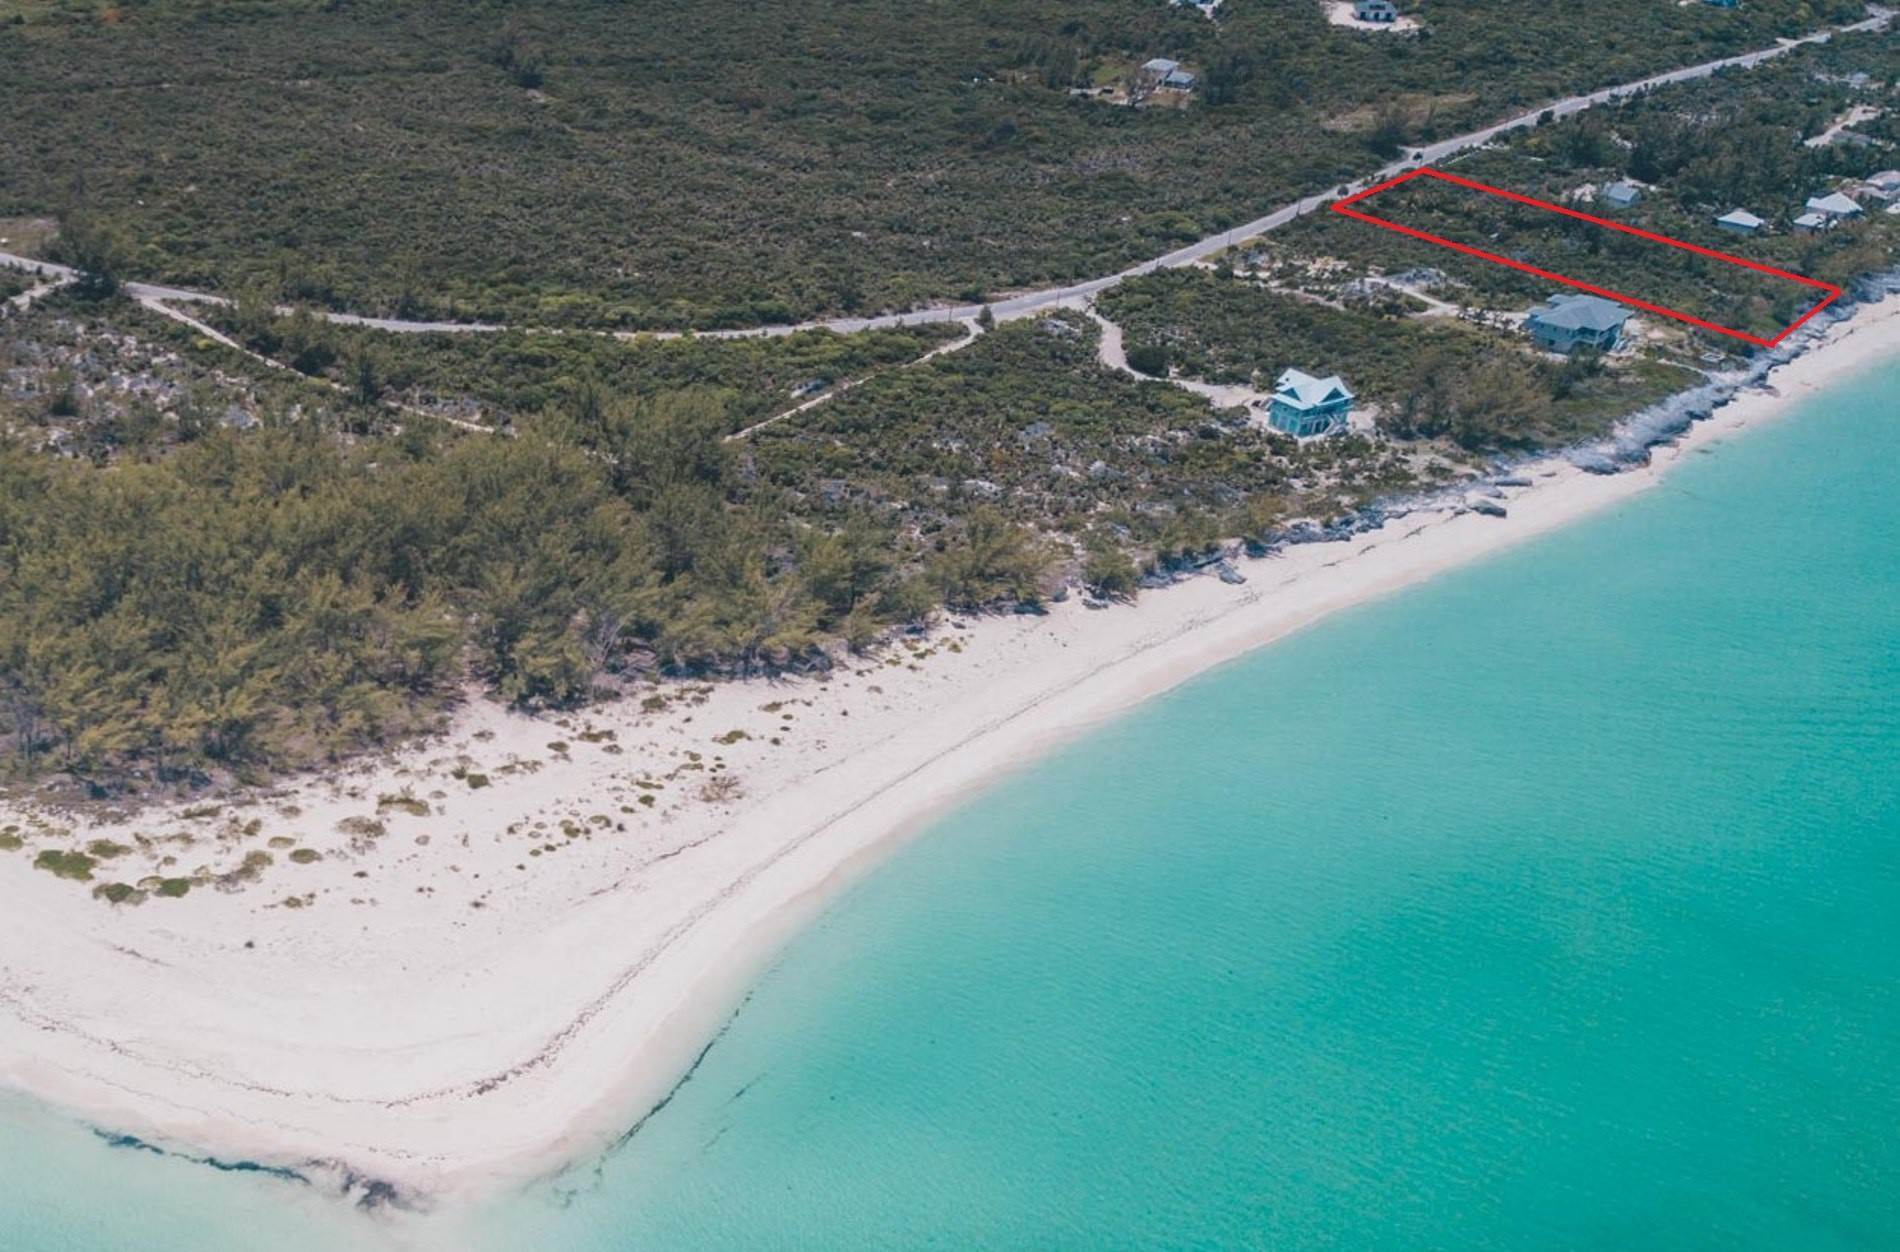 Land for Sale at Beachfront Opportunity in Great Harbour Cay - MLS 42298 Great Harbour Cay, Berry Islands, Bahamas